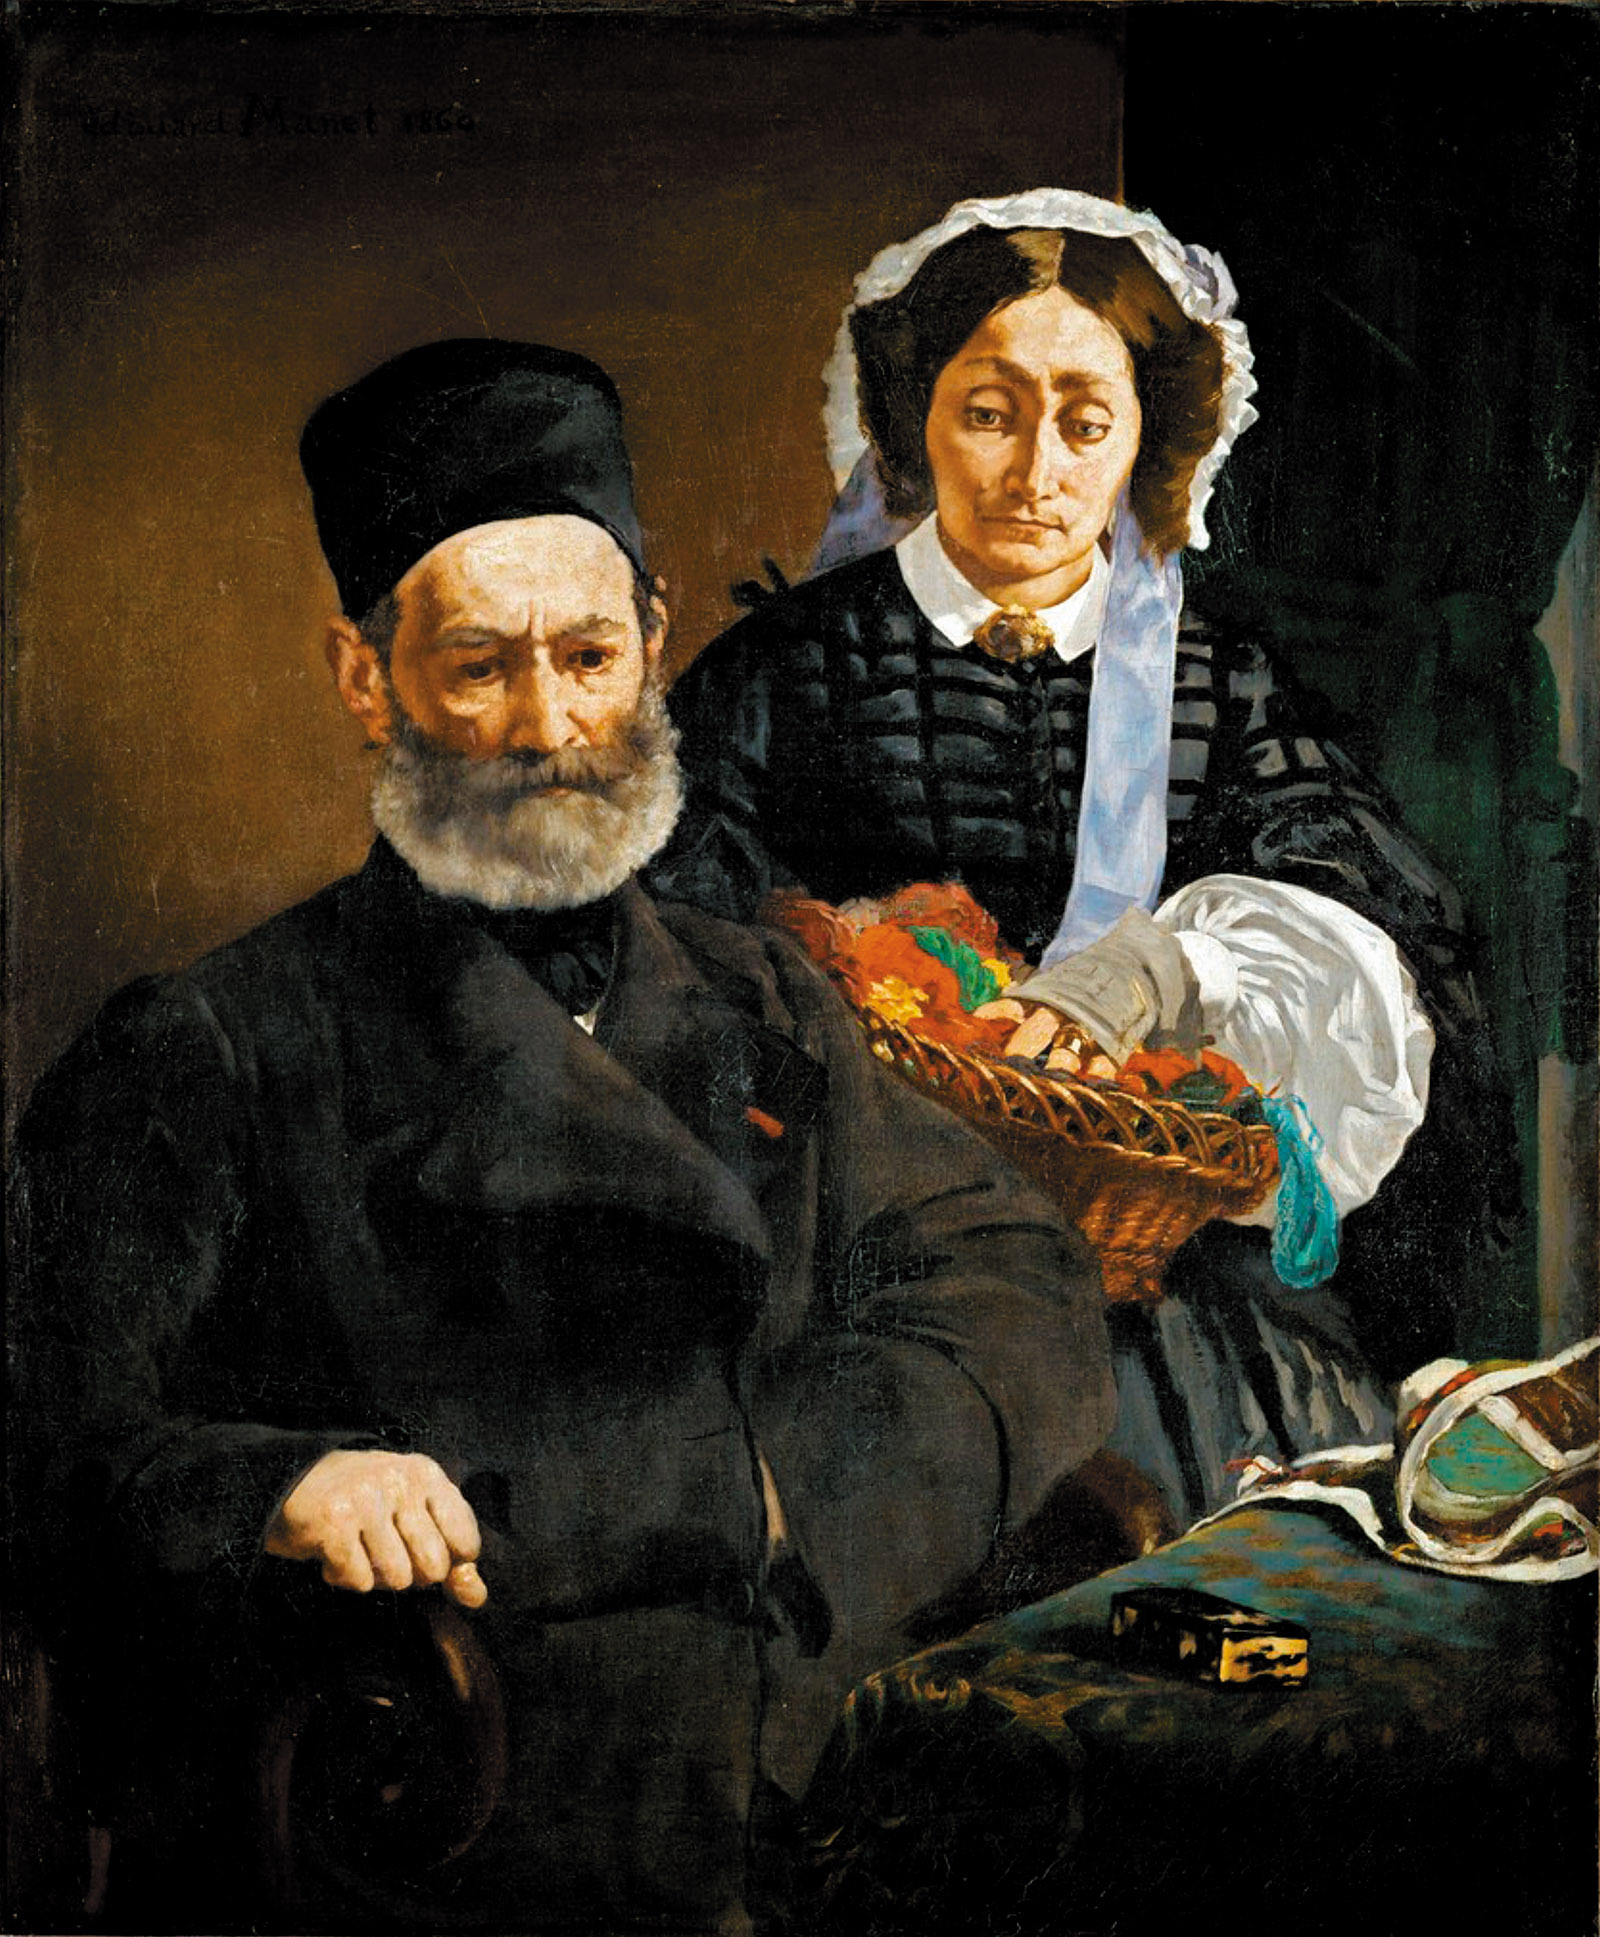 Monsieur and Madame Auguste Manet; painting by Édouard Manet